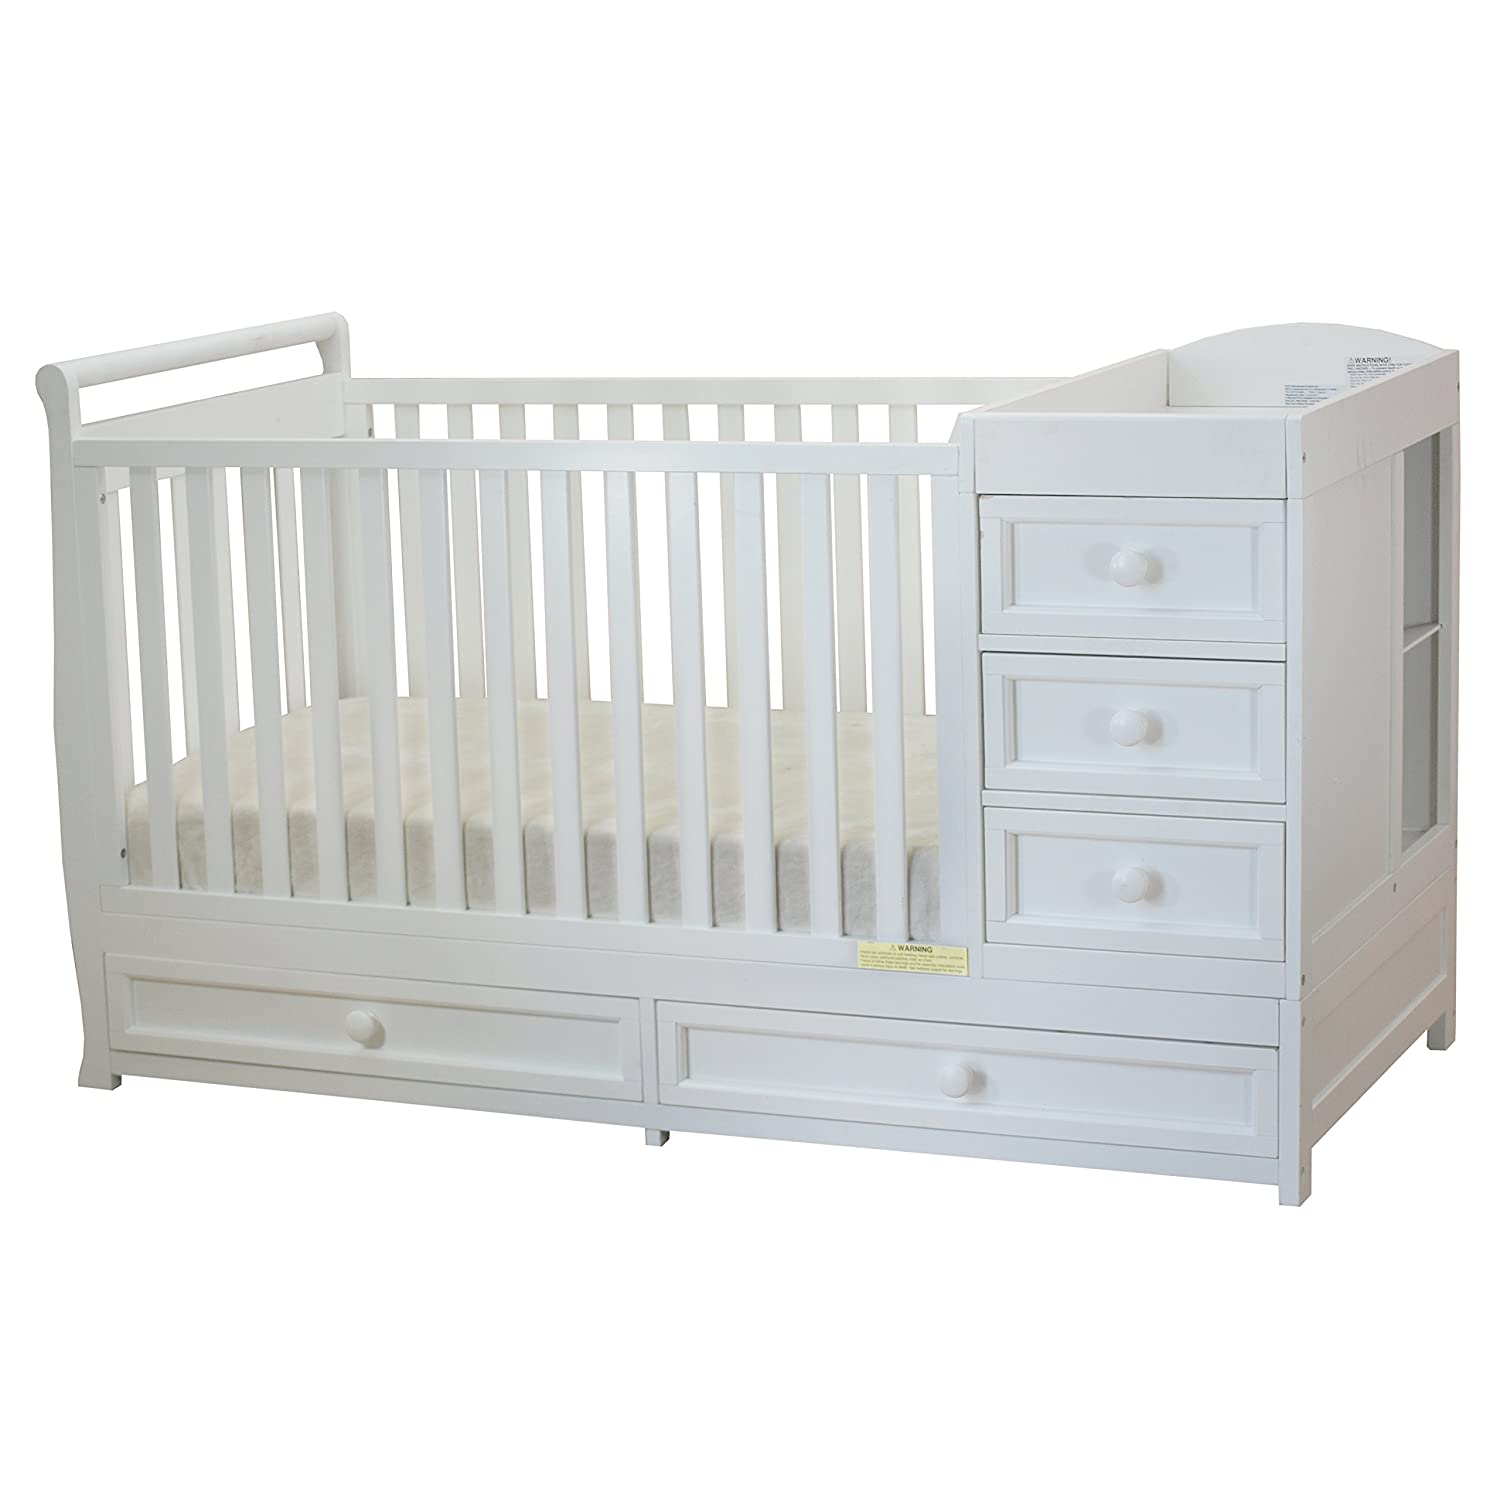 Baby Toddler Infant Cot Crib TOP CHANGER Diaper Nappy Mat Table Pine Wood White